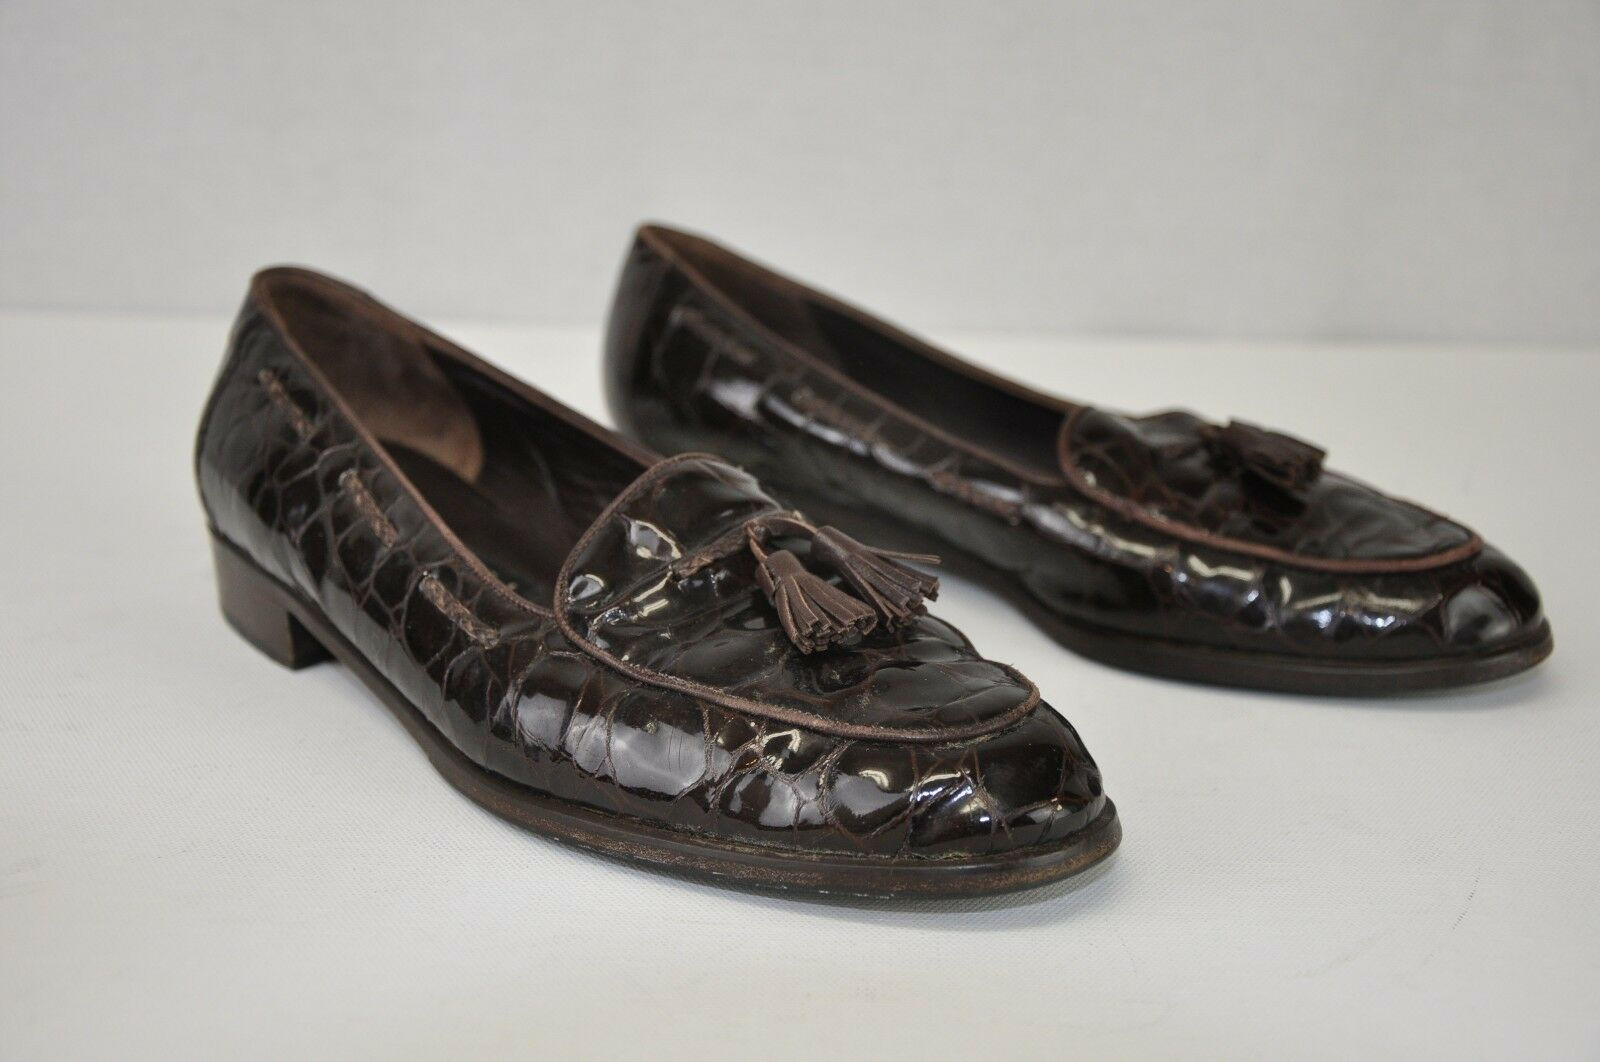 8.5B Amalfi Marronee Patent Genuine Leather Croc Print Tassel Slip On Loafer